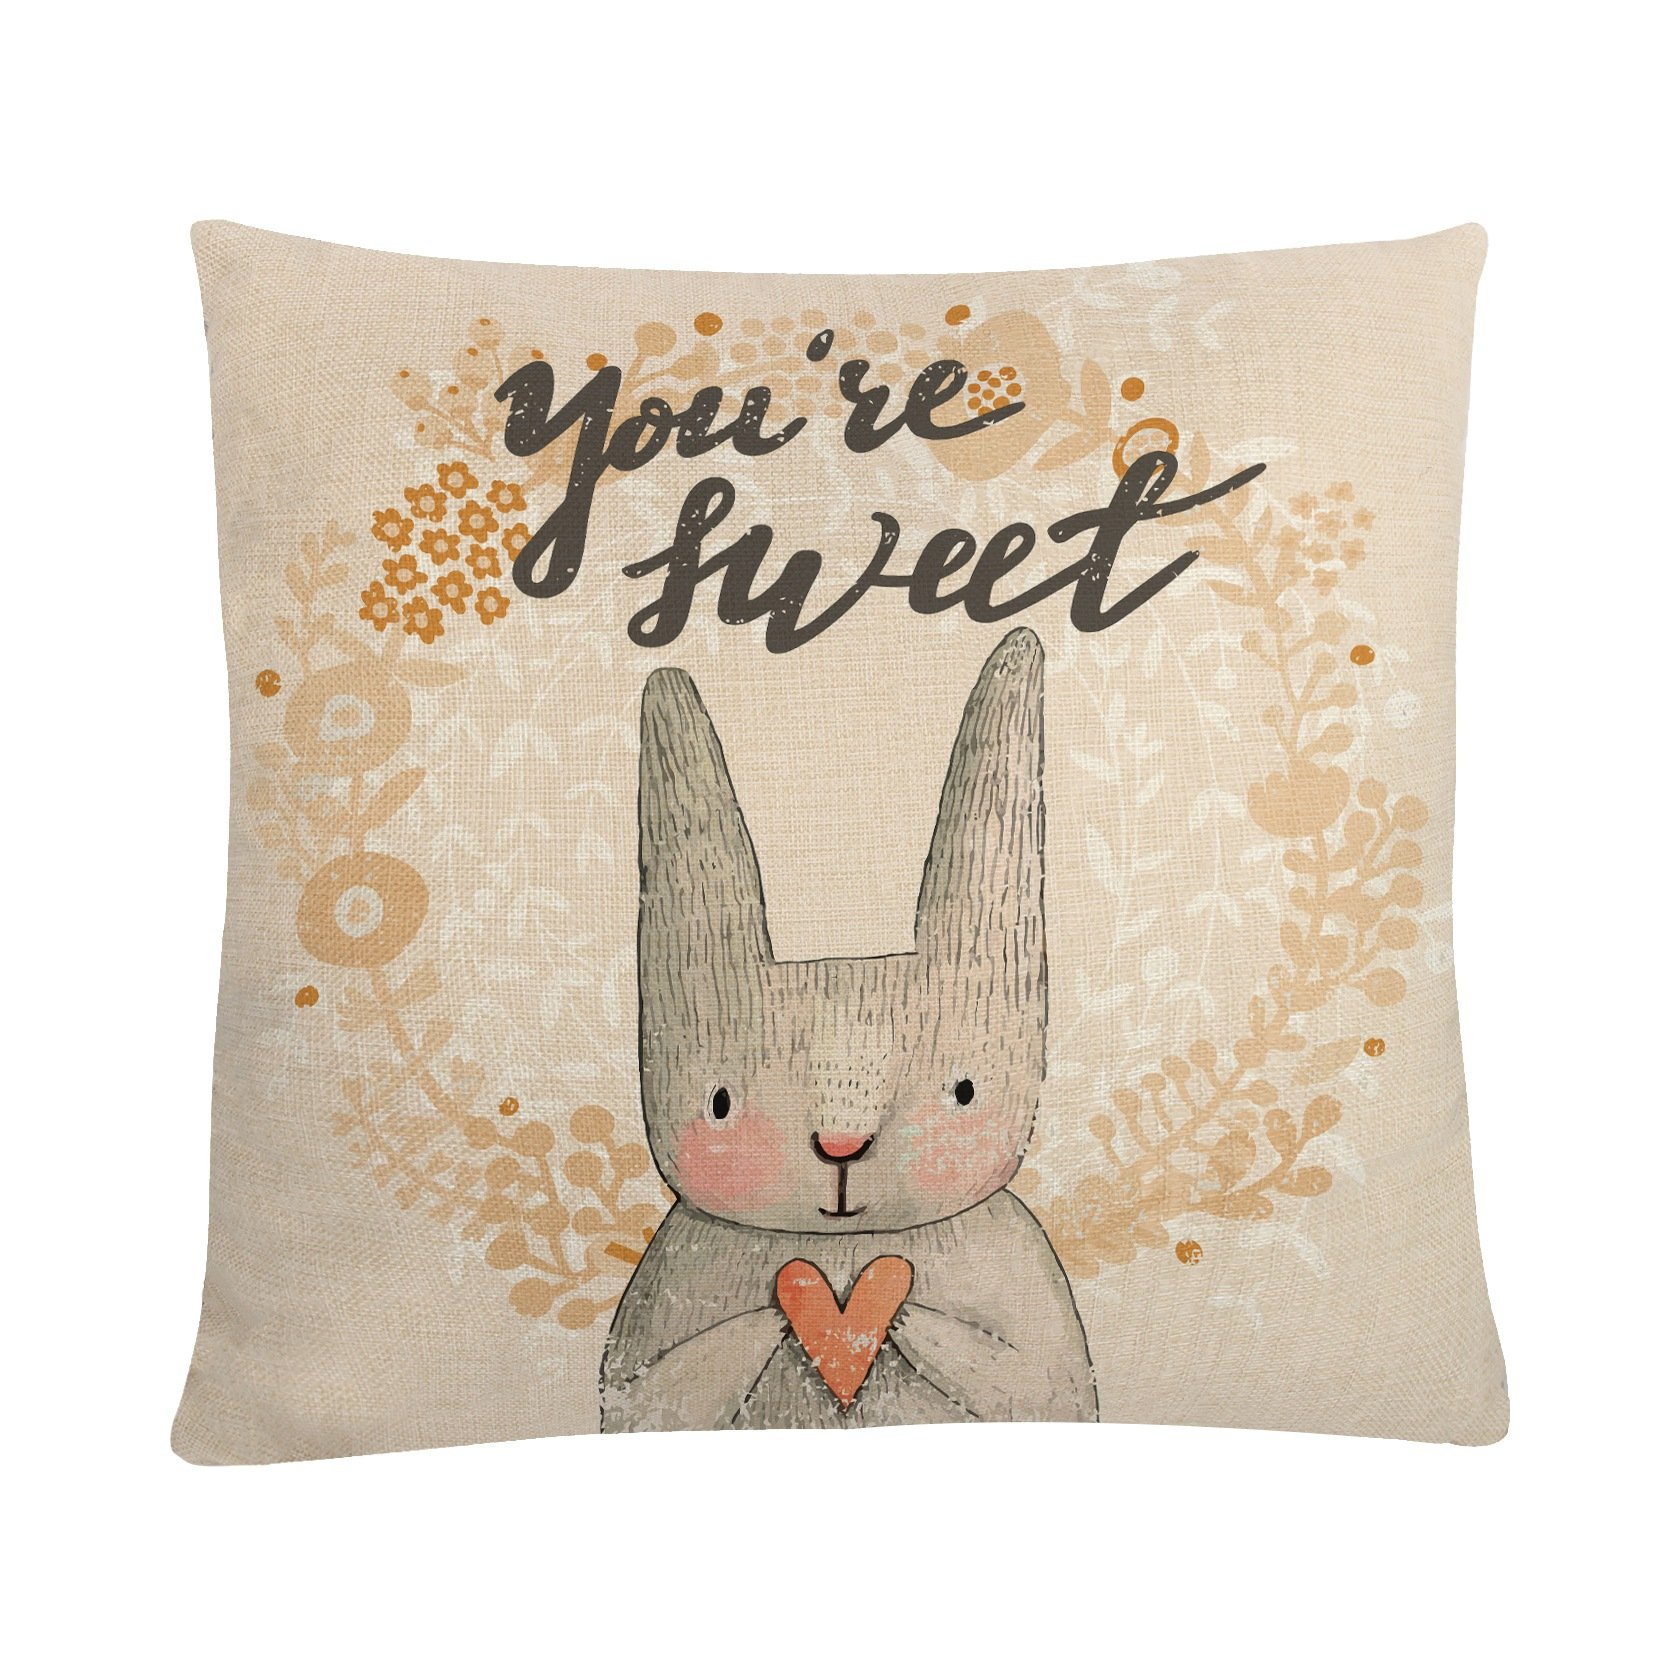 MAYUAN520 Cushion、Decorative Pillows Decorative Cushion Cover For Bedroom Living Room Sweet Animals Rabbit Pillows Cases For Sofa Chair Bed Car Seats Home Decoration